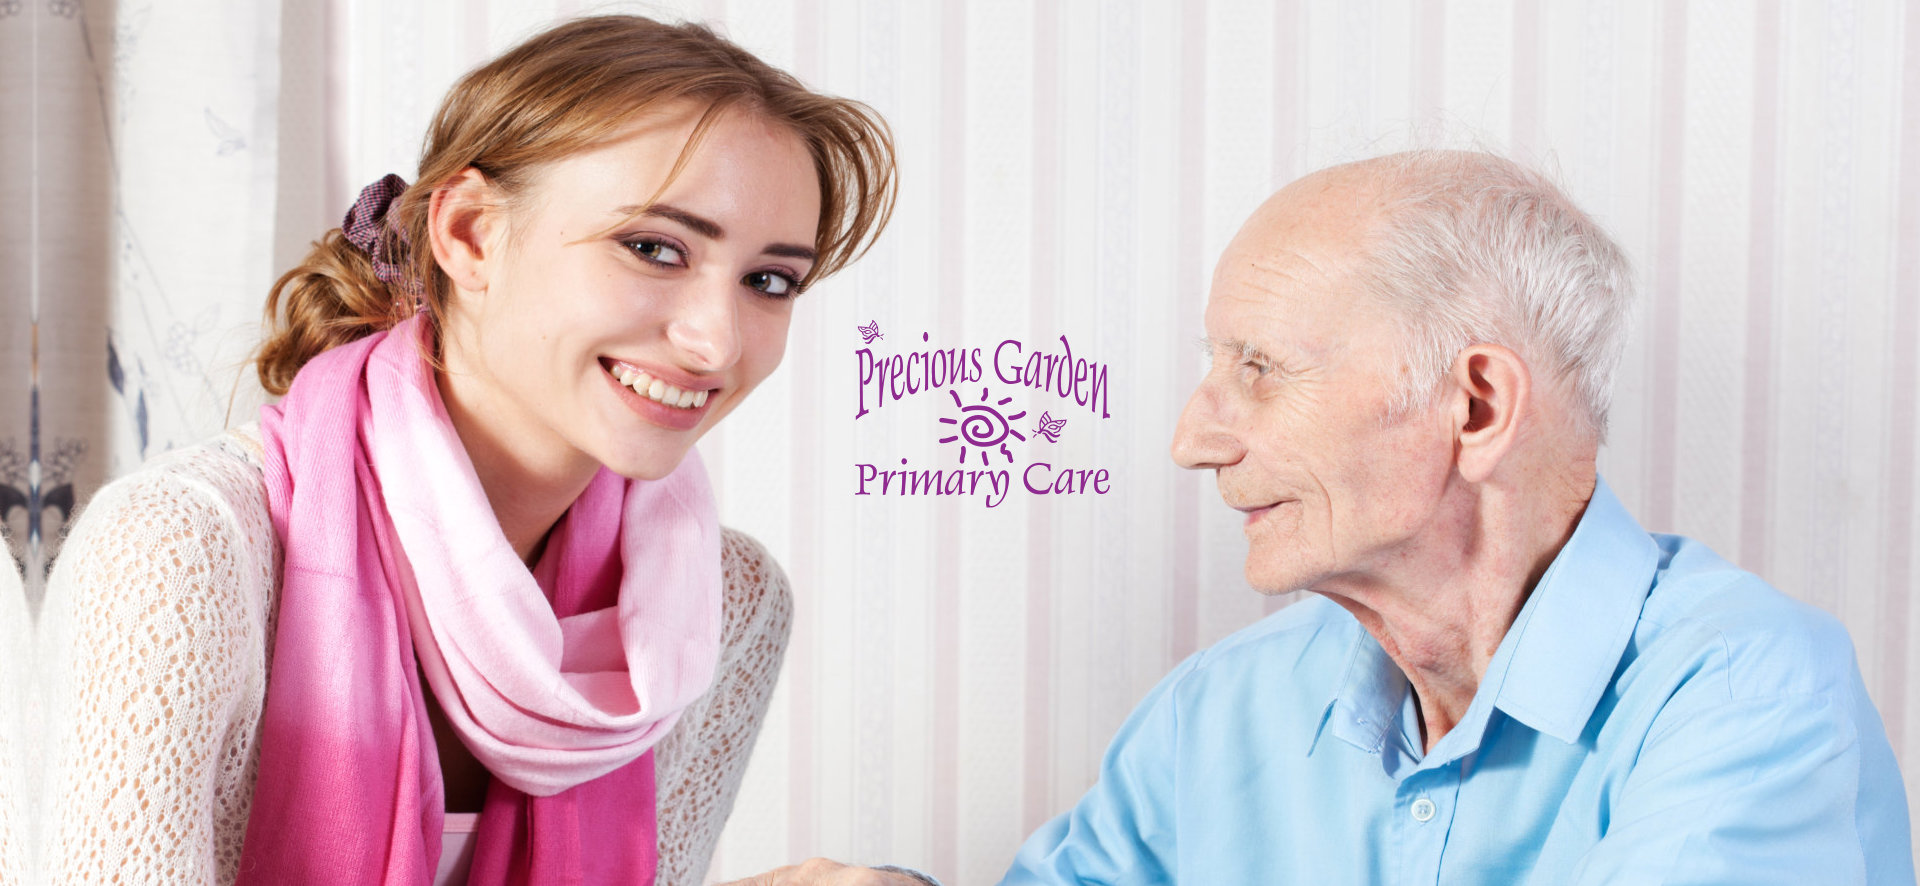 caretaker and patient smiling